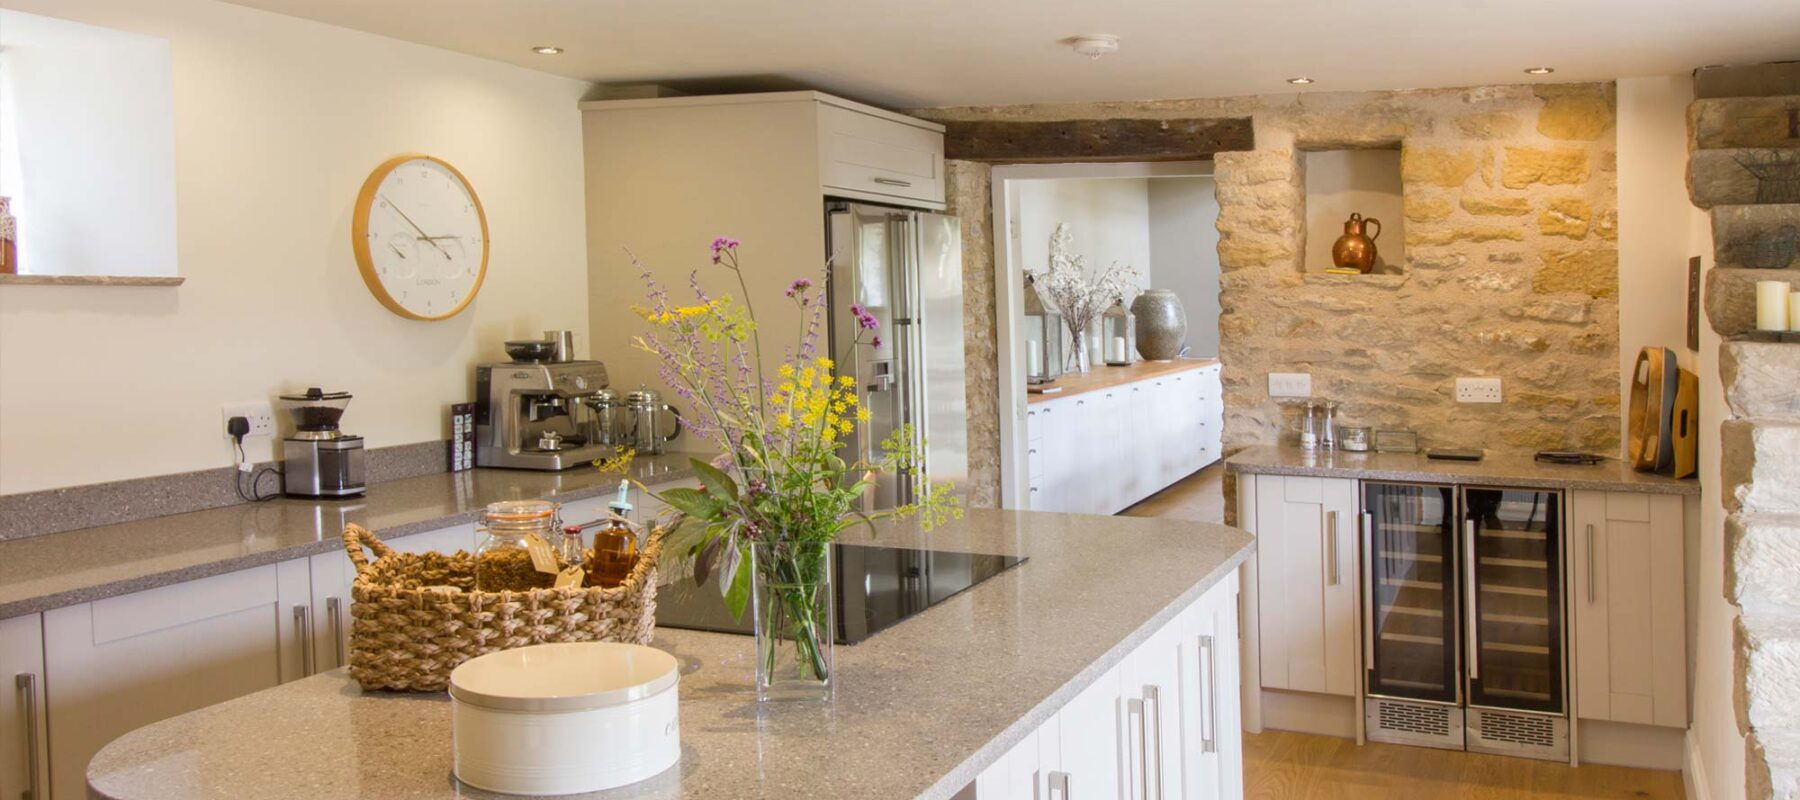 Town End Farm kitchen, holiday accommodation, North Yorkshire